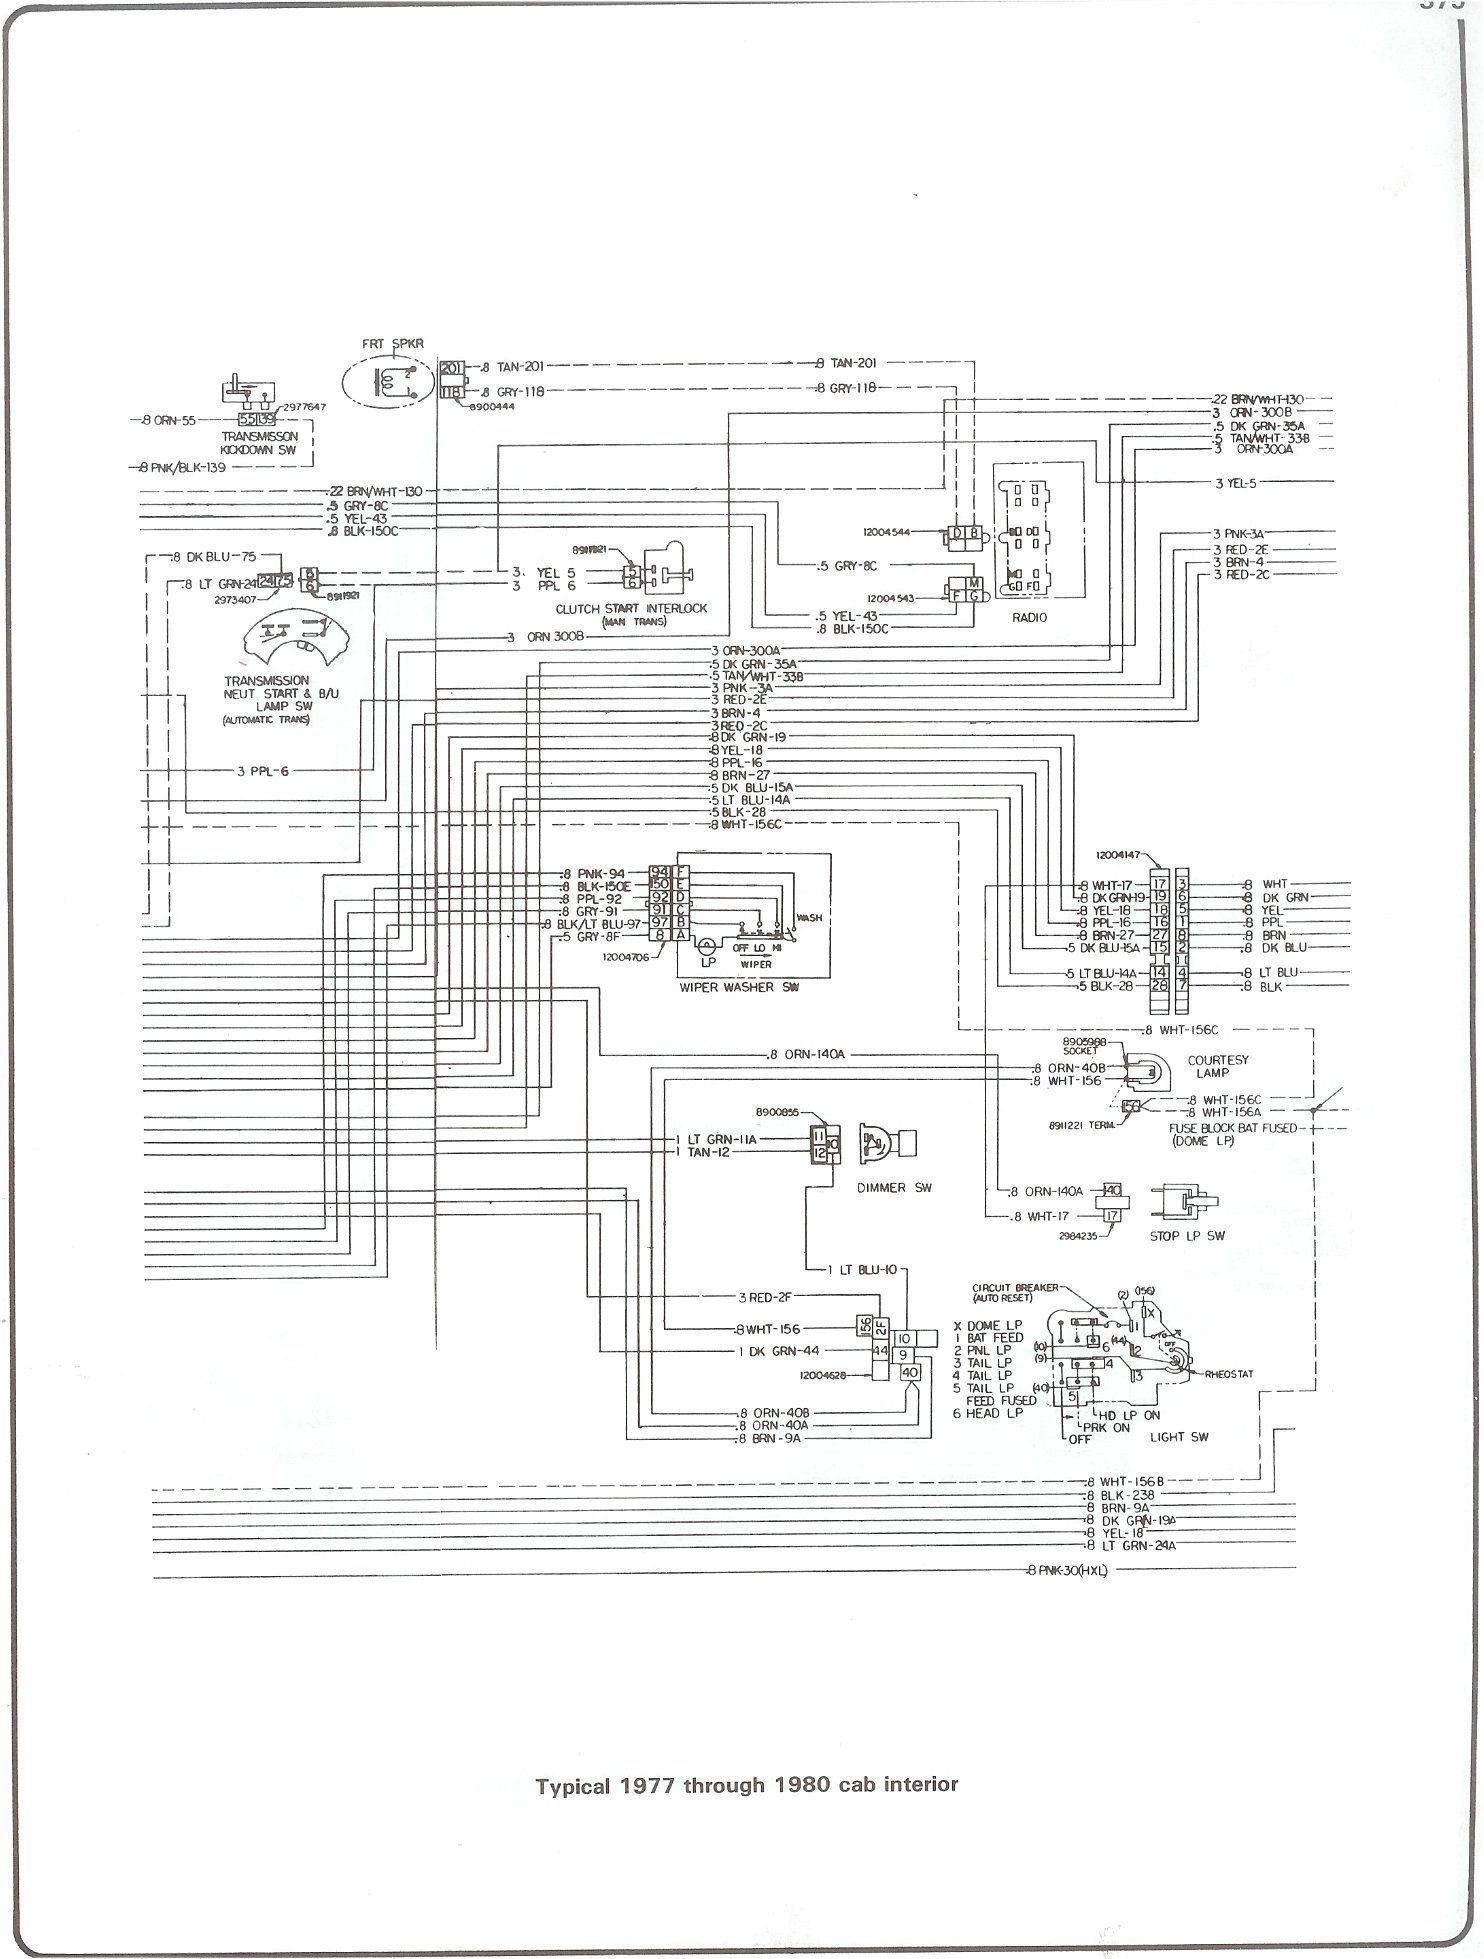 77 80_cab_inter complete 73 87 wiring diagrams 1984 chevy c10 wiring diagram at gsmx.co